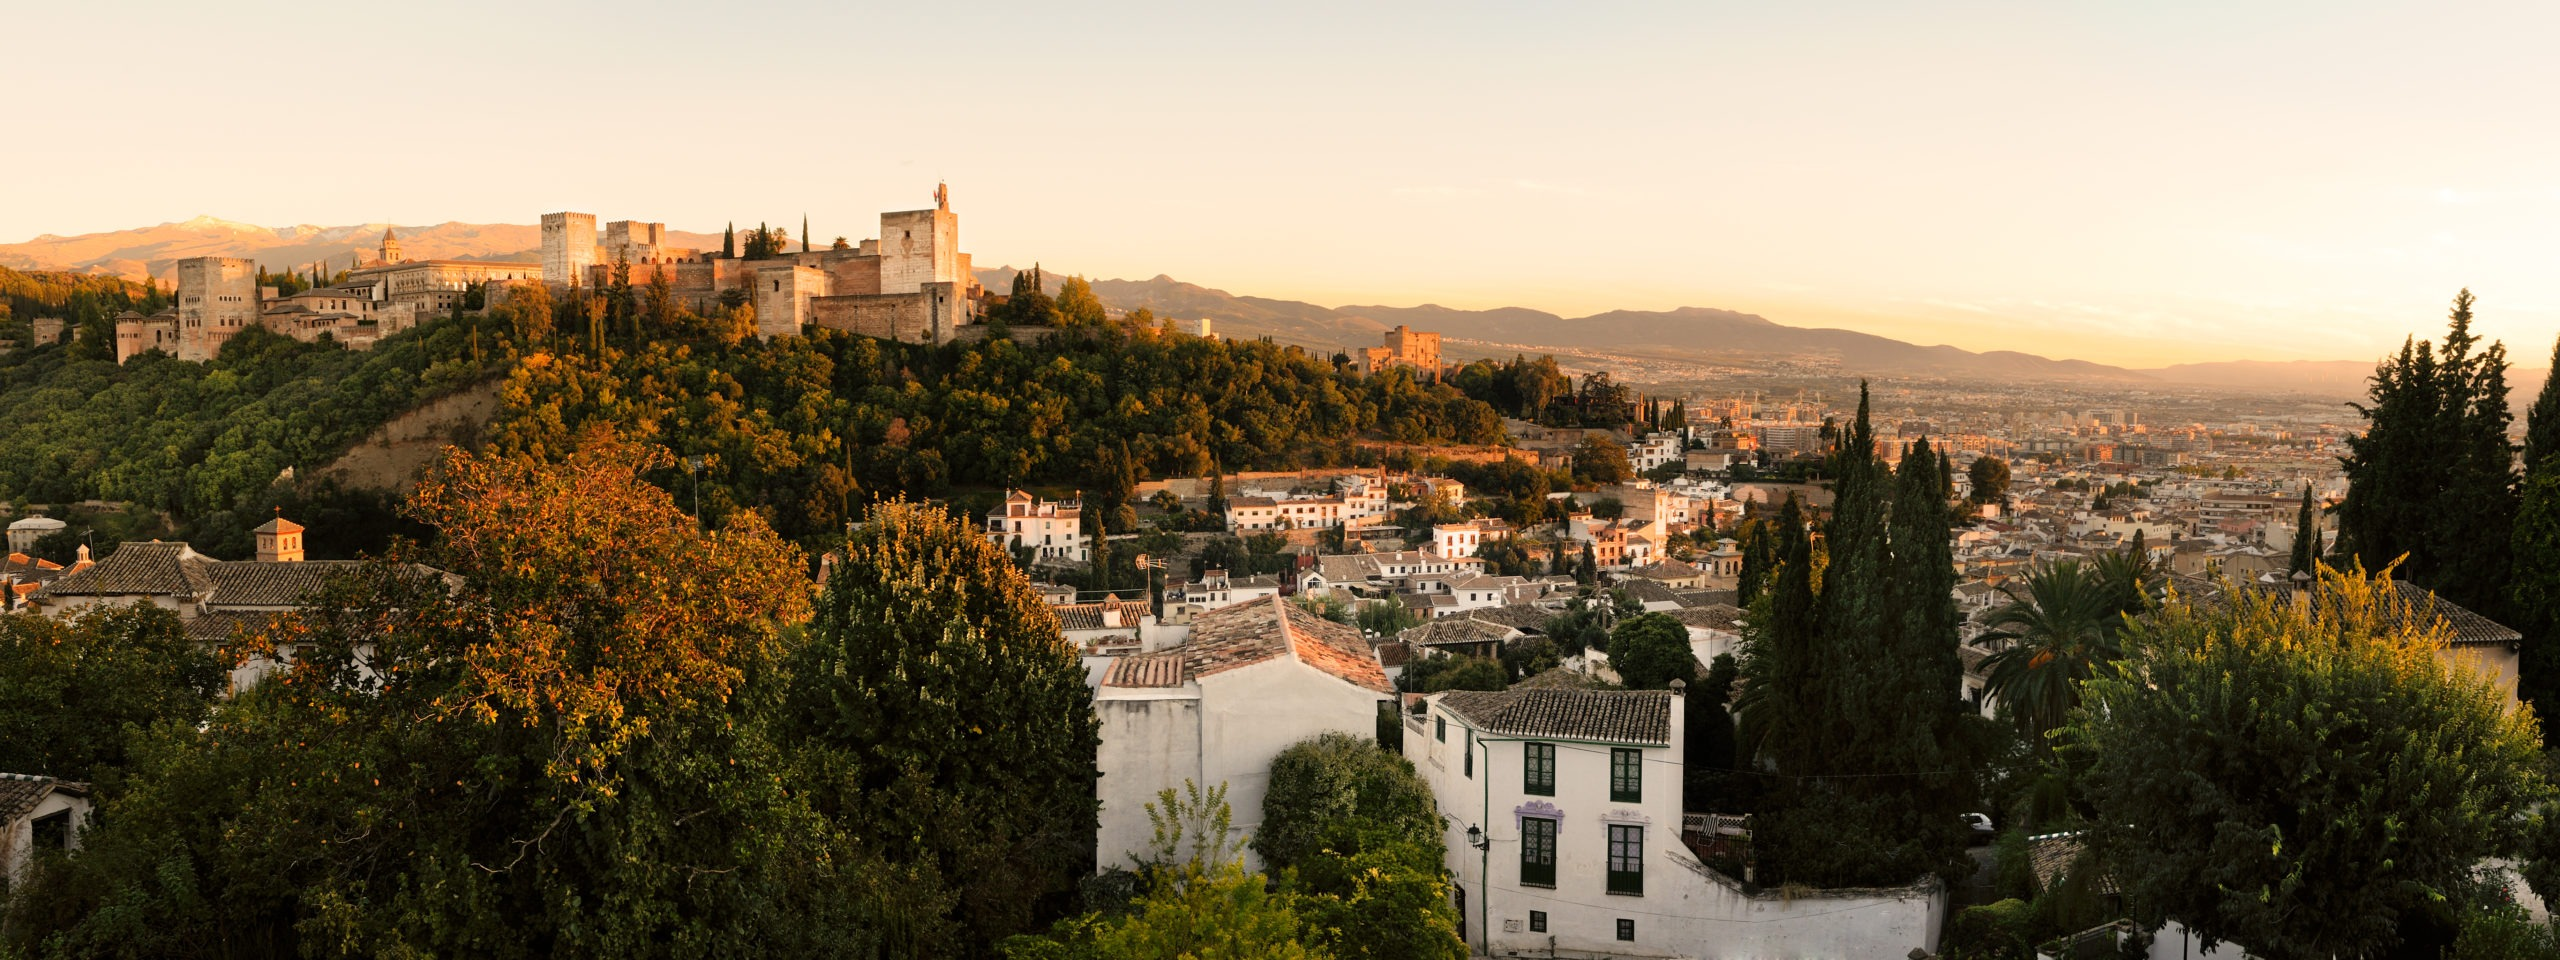 landscape-of-alhambra-and-granada-at-sunset